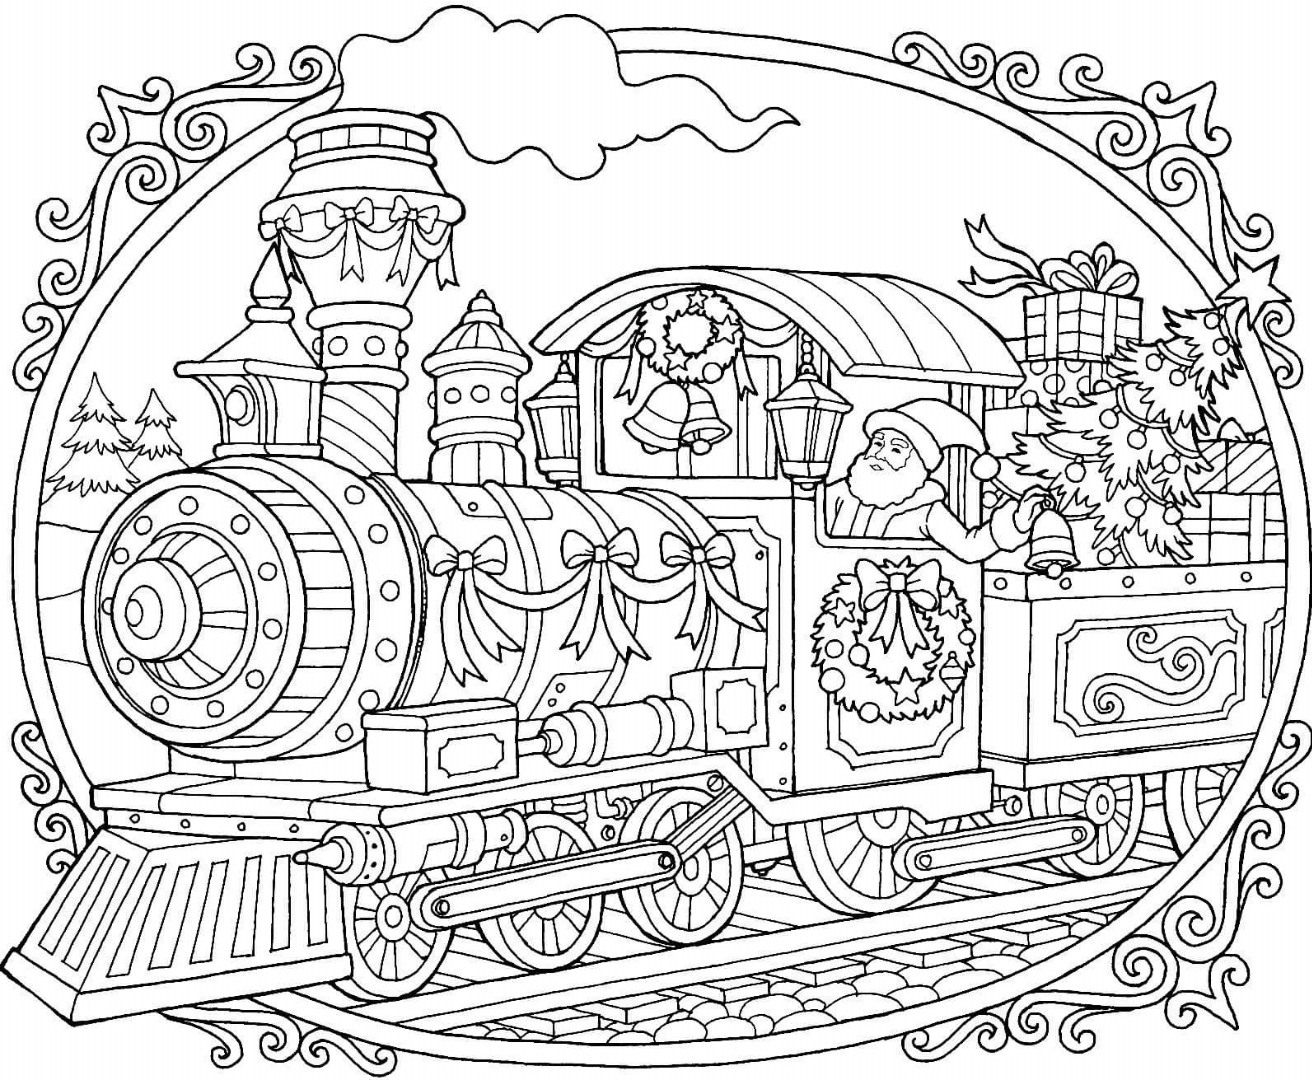 coloring train drawing pictures for kids 12 christmas drawing download ty coloring pictures train for kids drawing